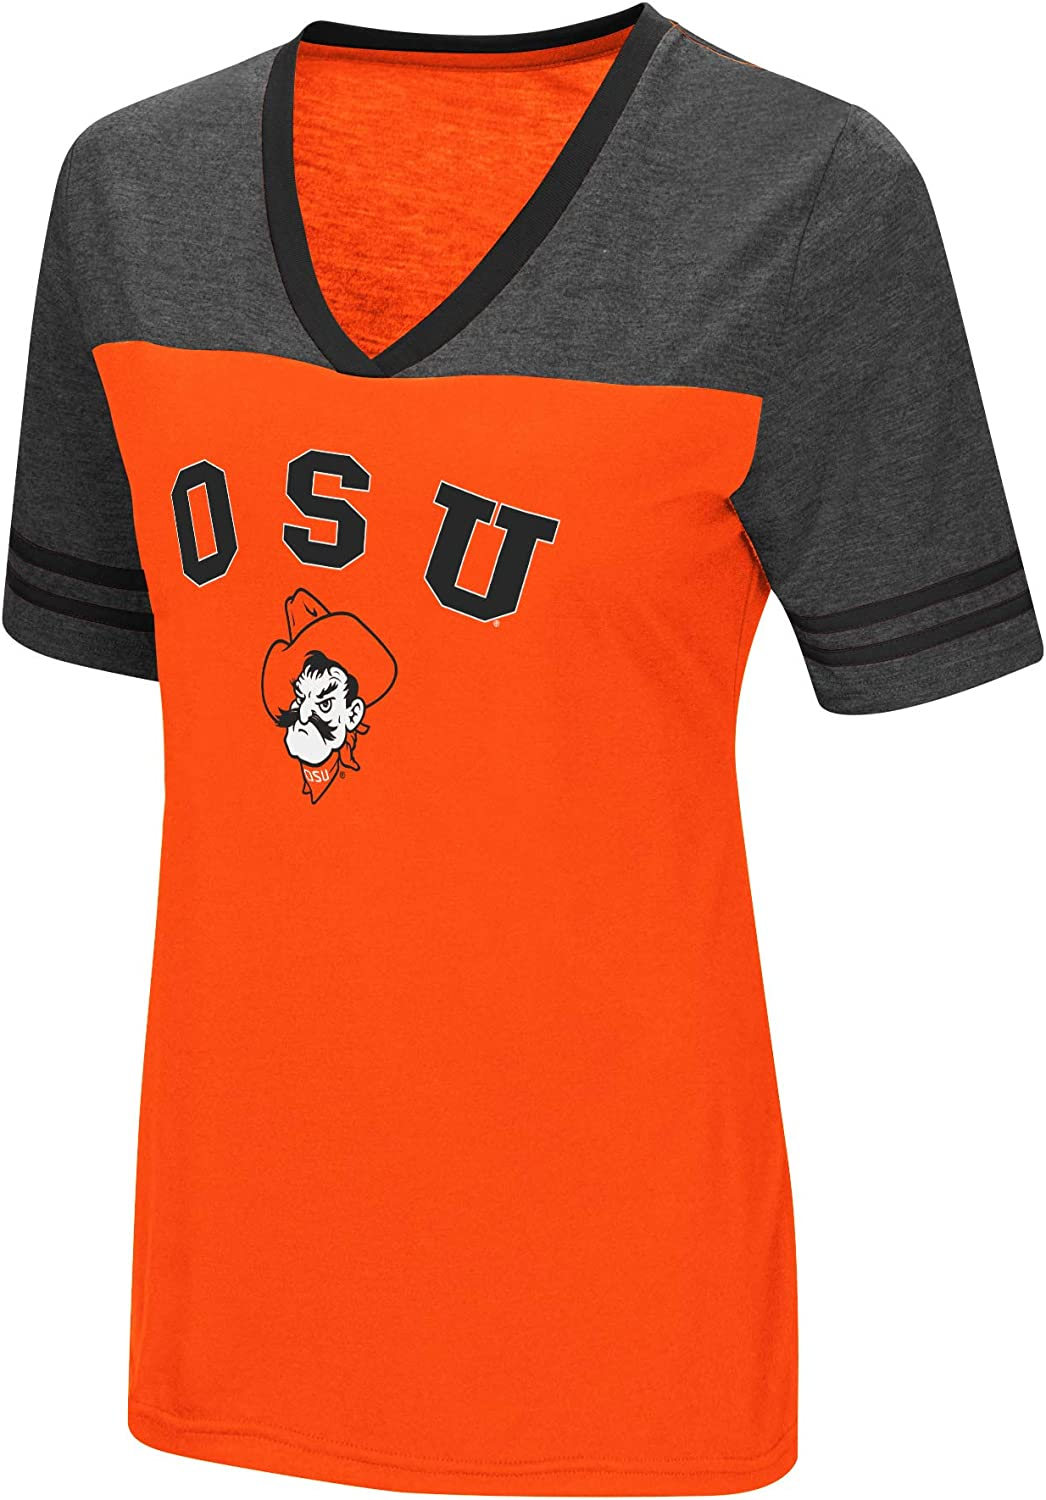 Colosseum Womens NCAA Varsity Jersey V-Neck T-Shirt